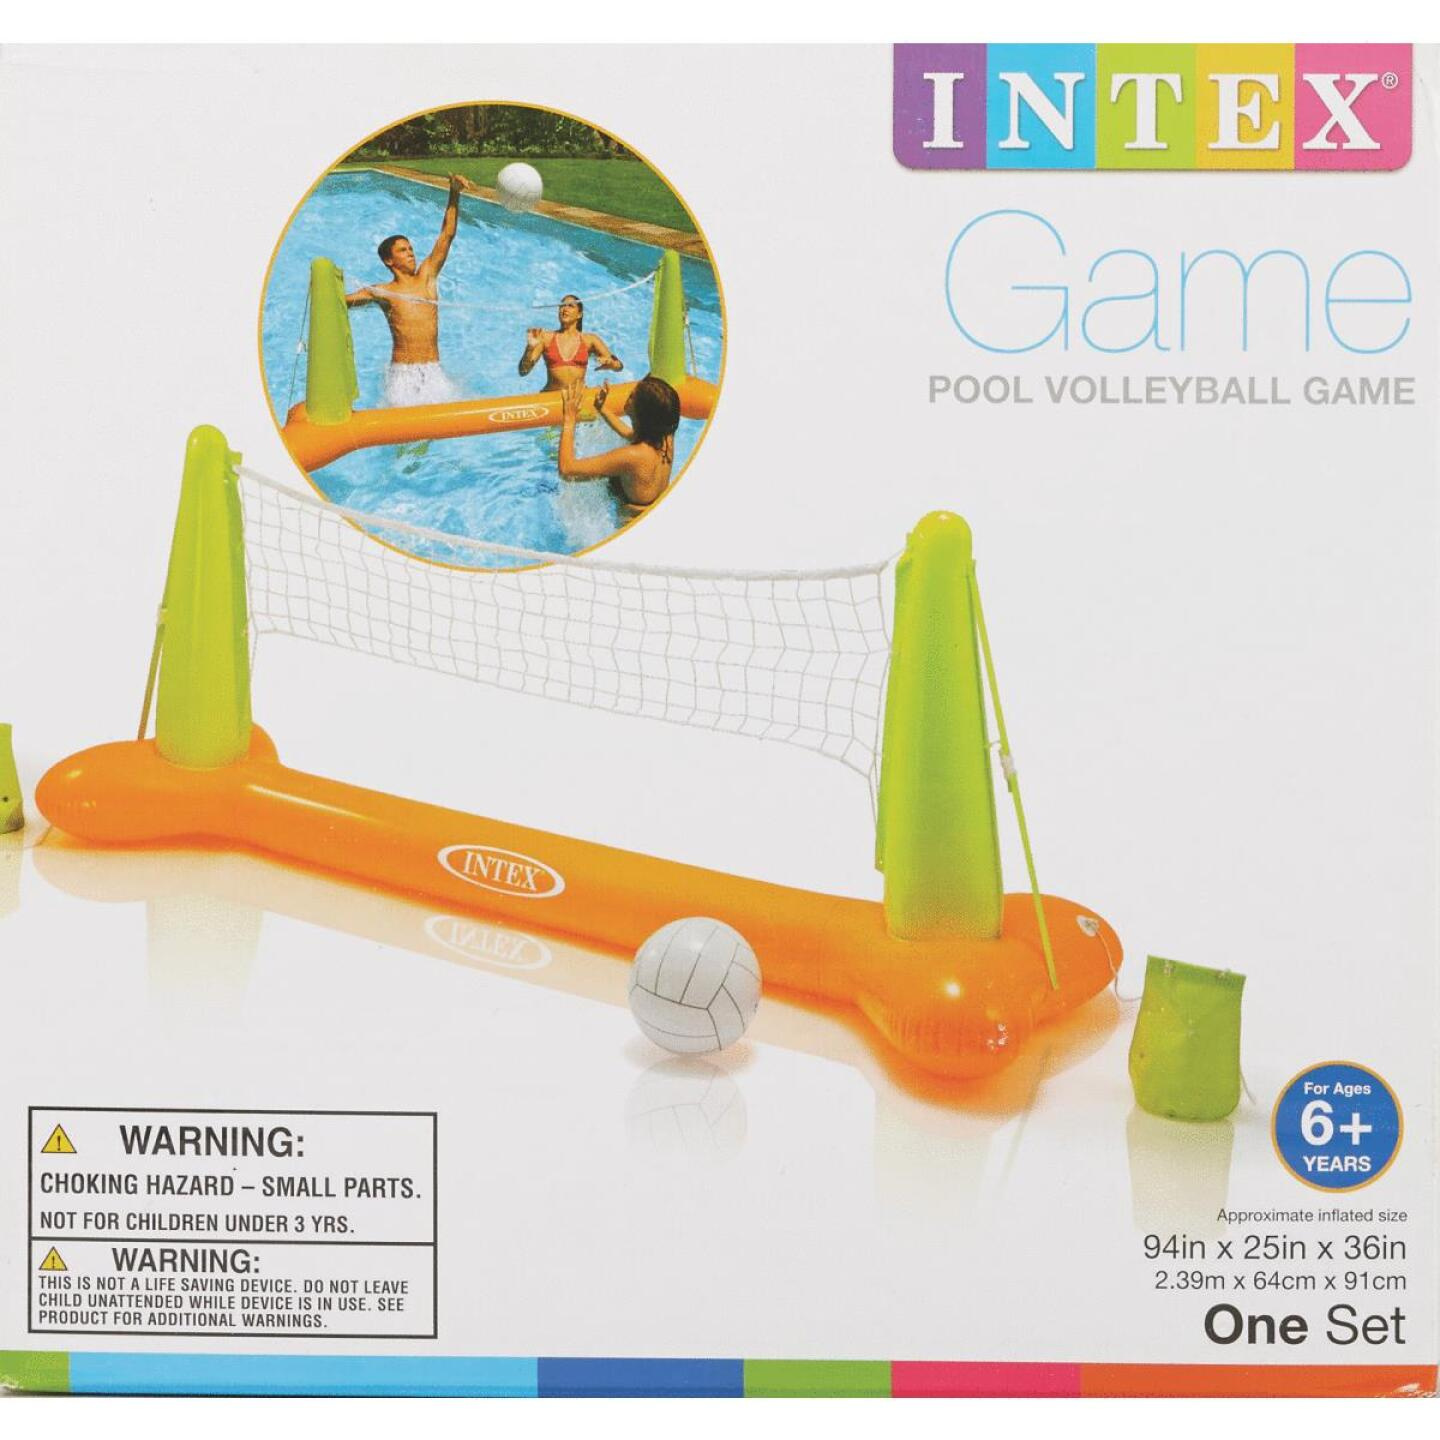 Intex 2 or More Players Inflatable Pool Volleyball Game Image 3